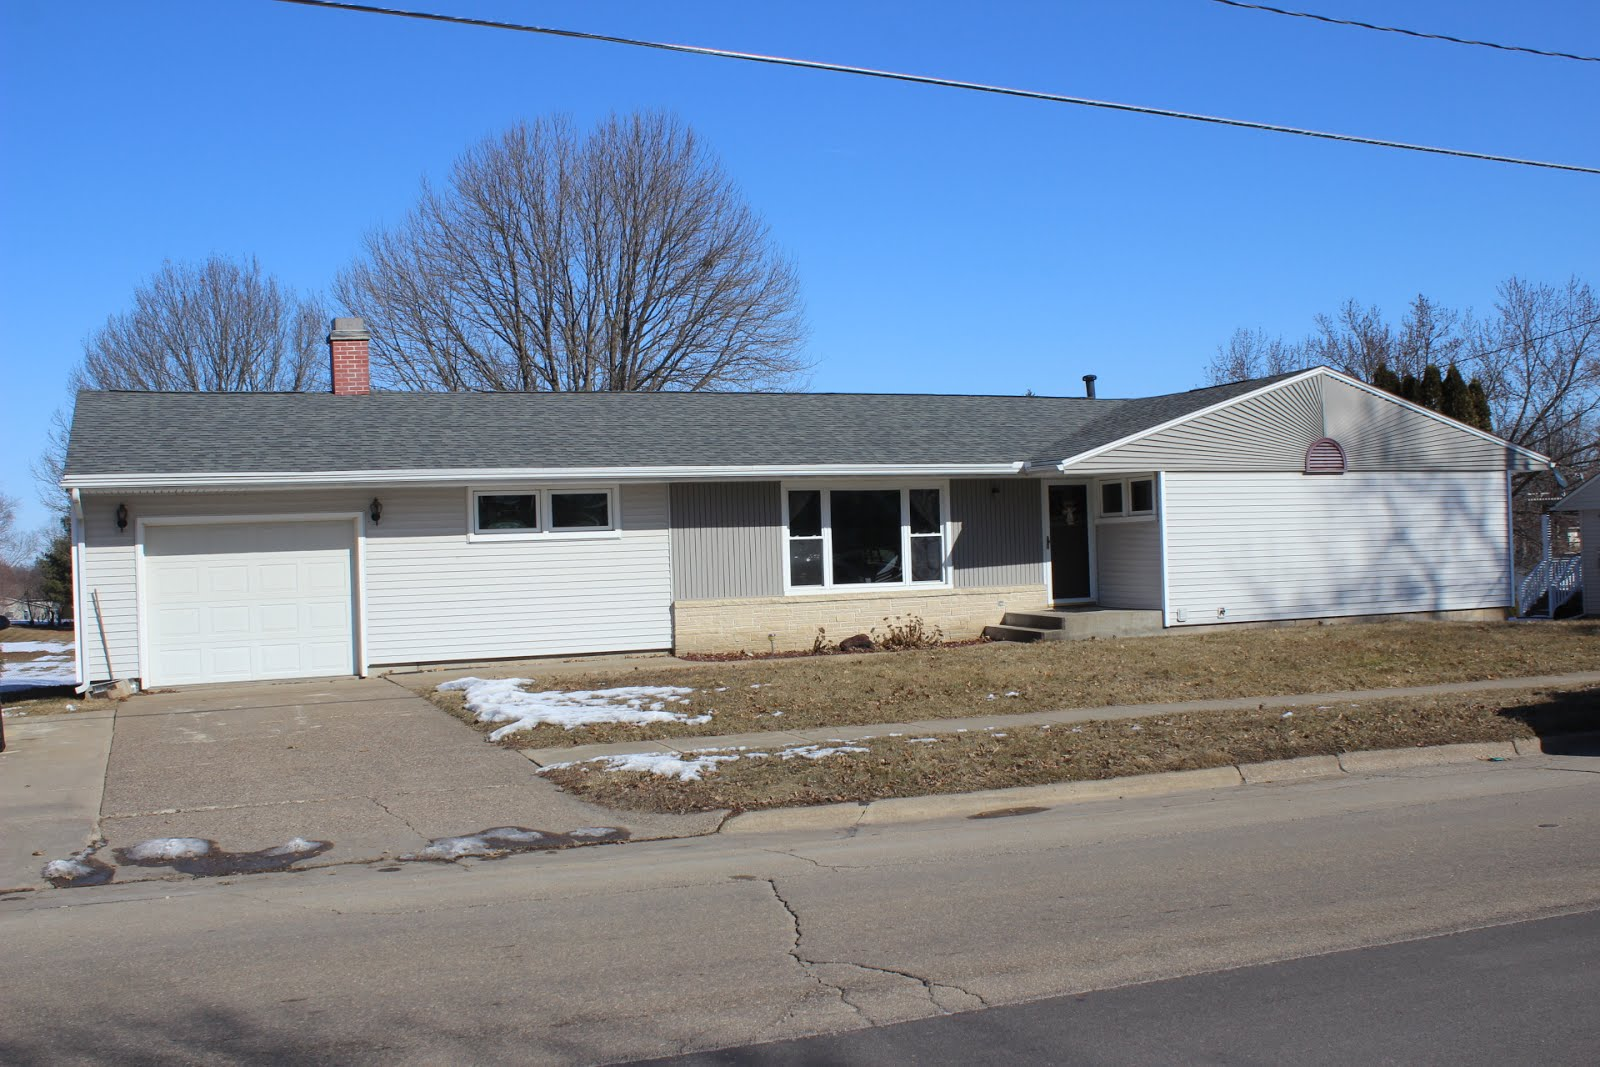 704 West Summit, Maquoketa, IA *PENDING*